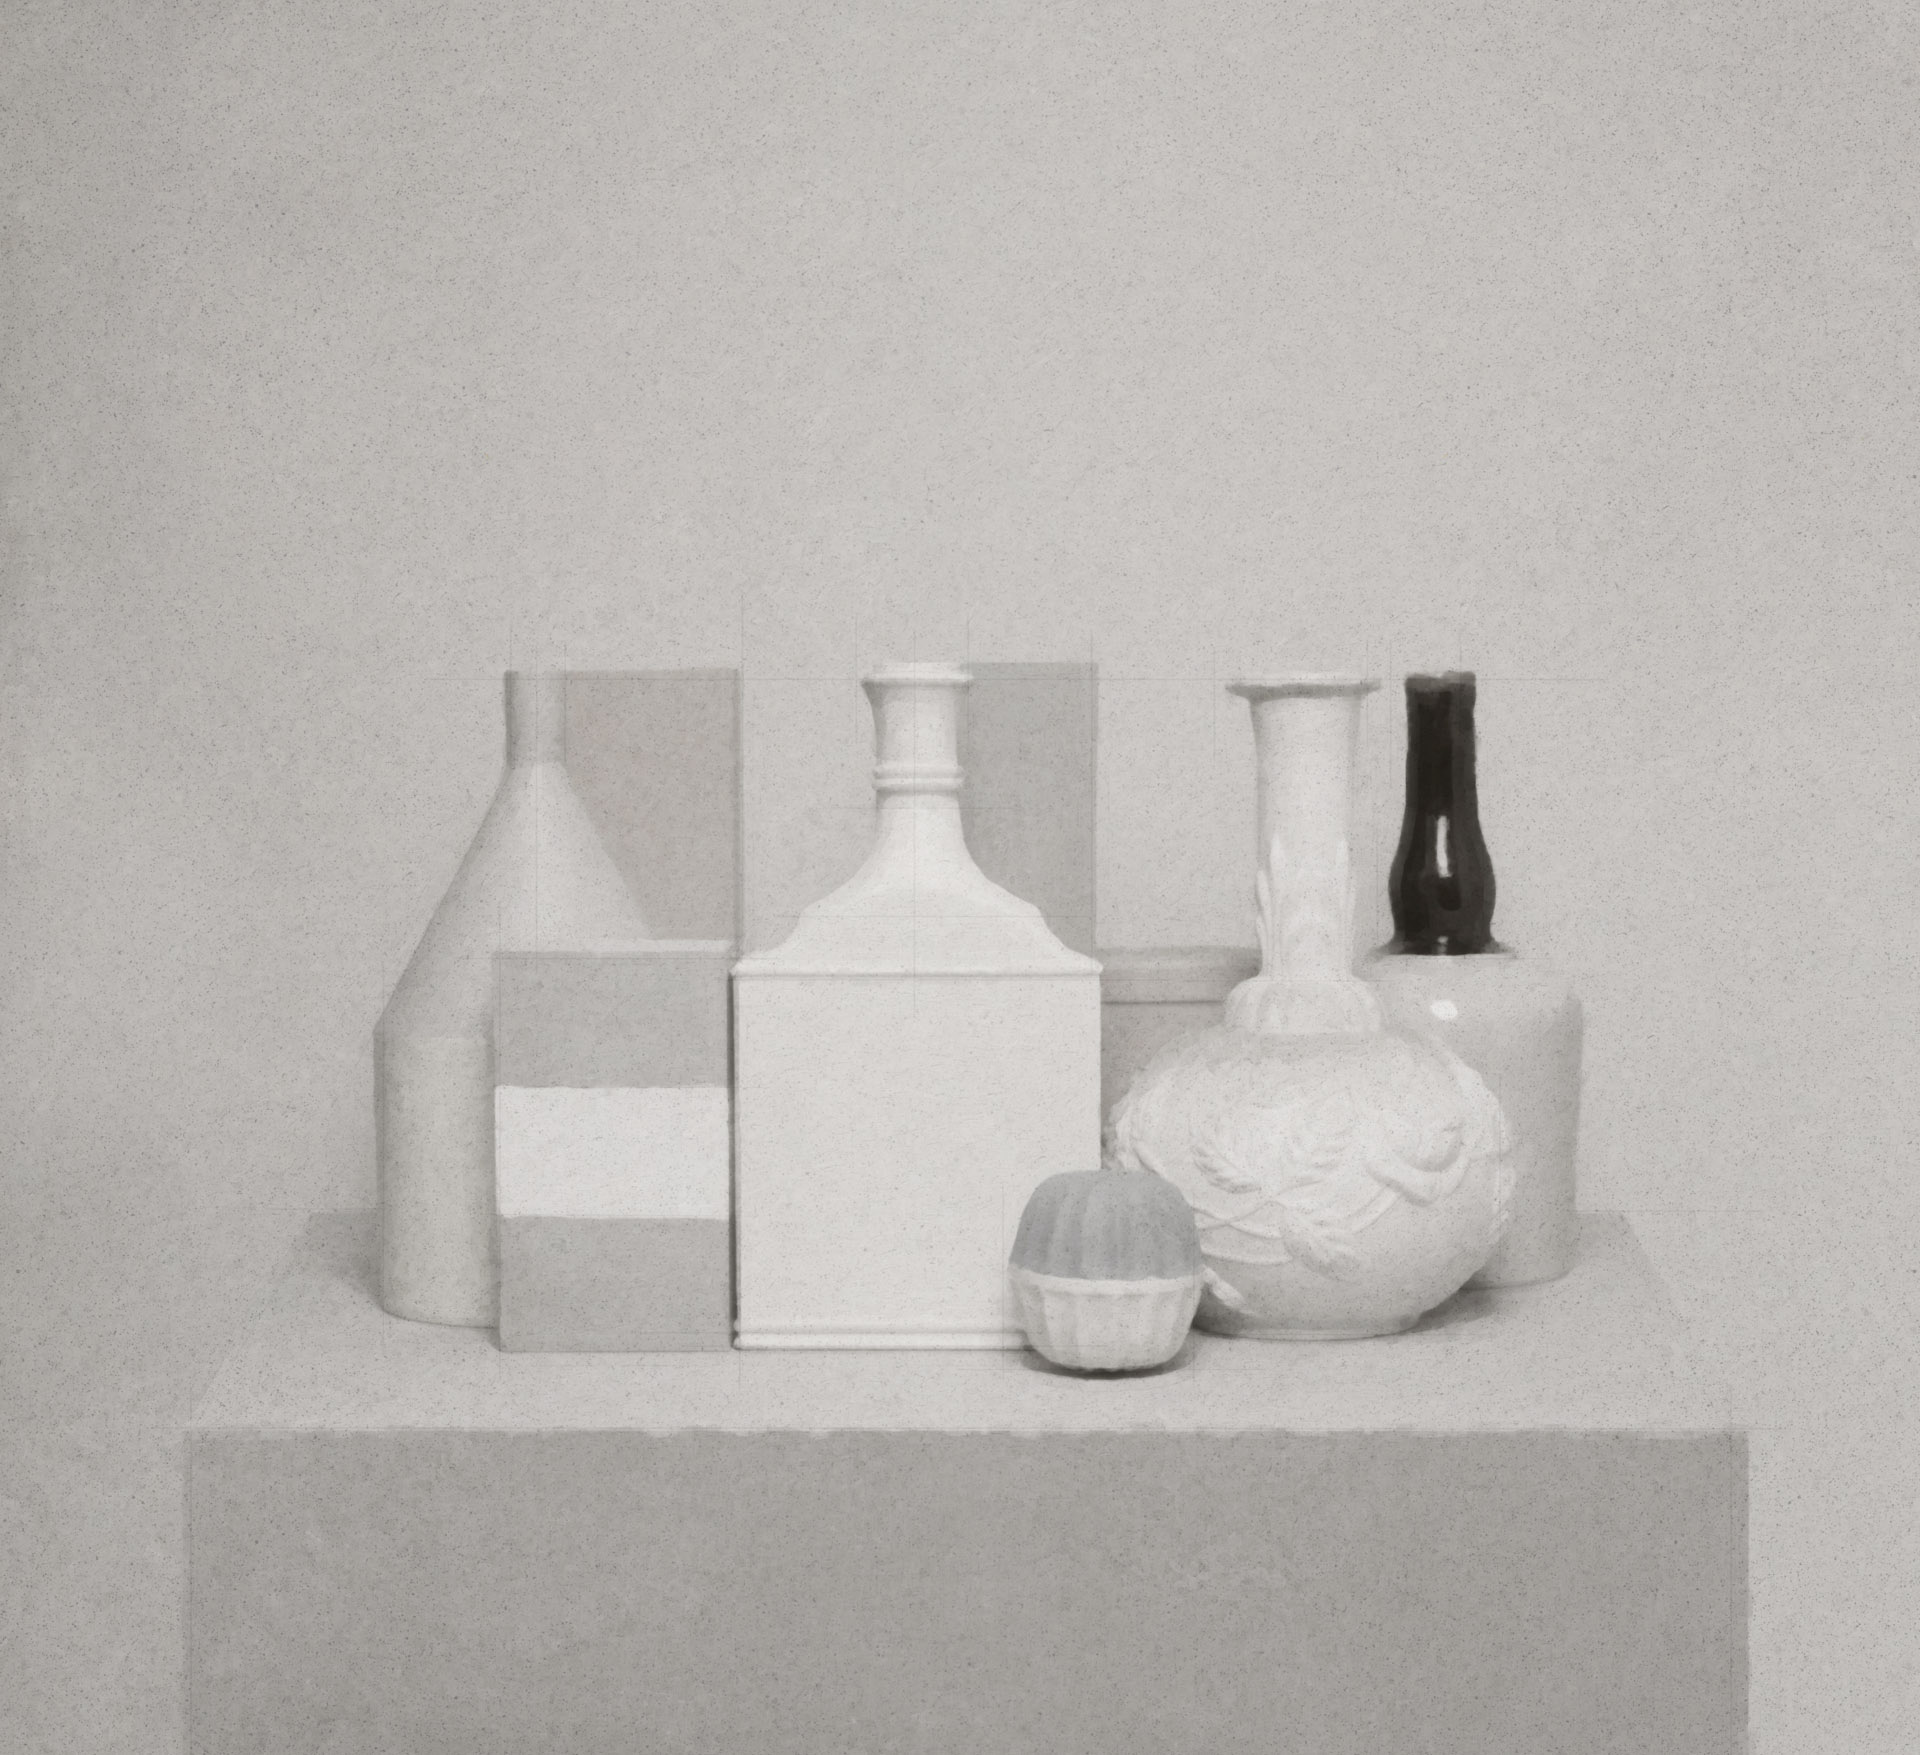 Morandi on a Pedestal 181